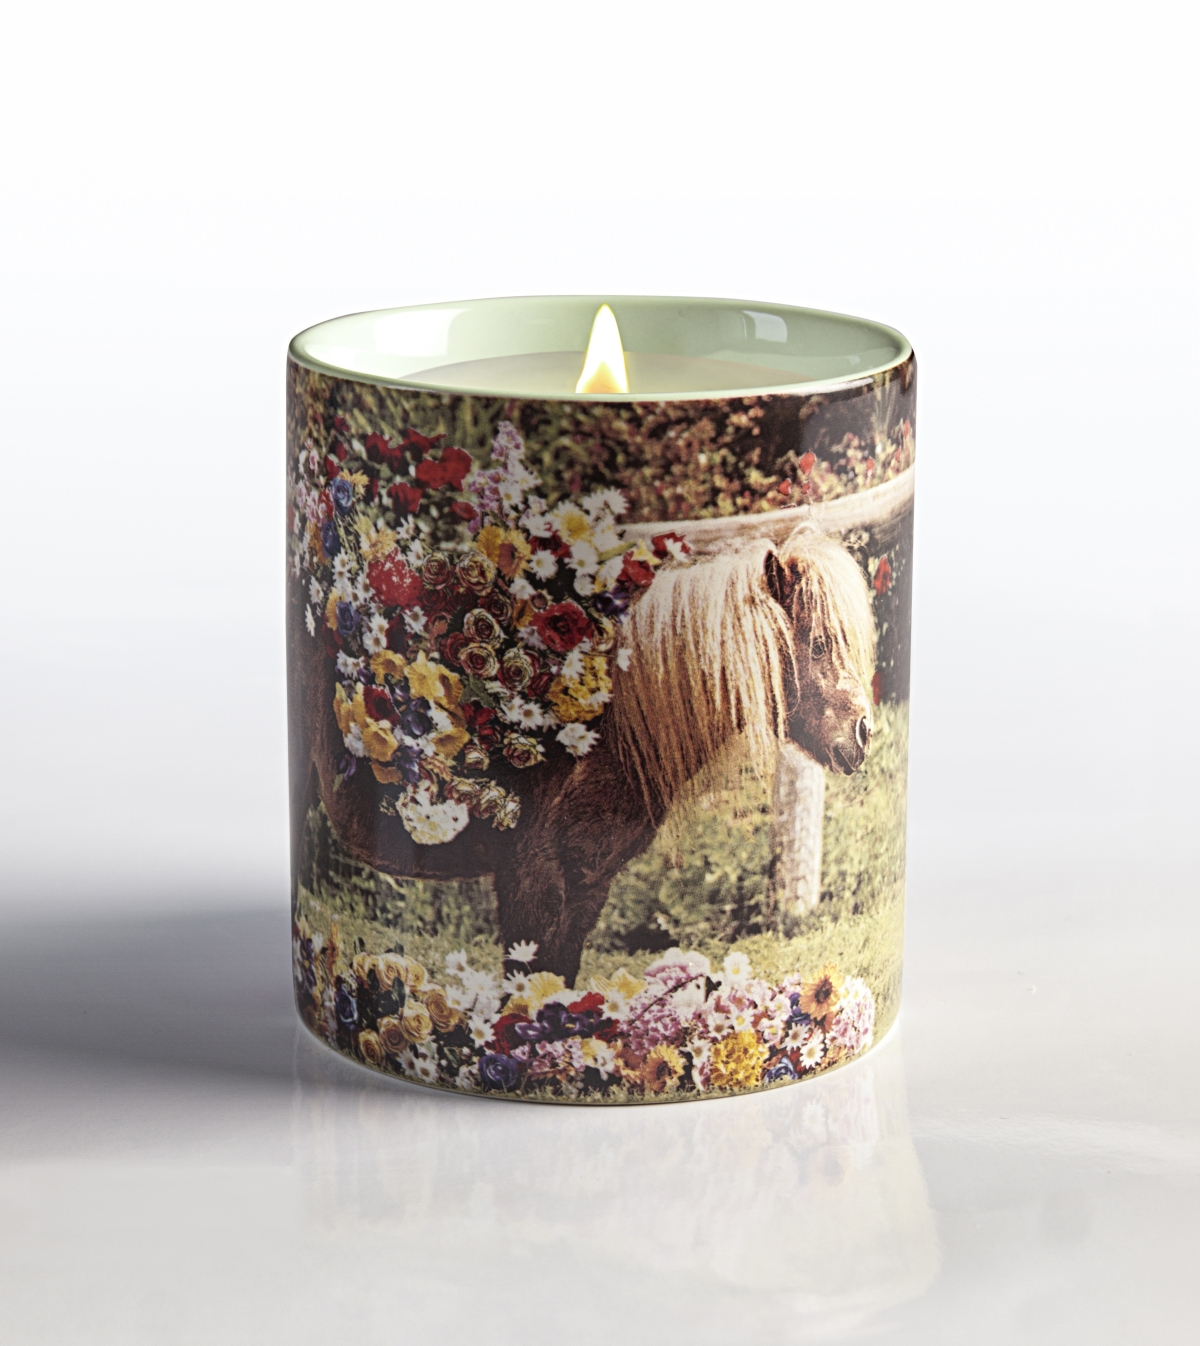 Seletti wears Toiletpaper PONY CANDLE